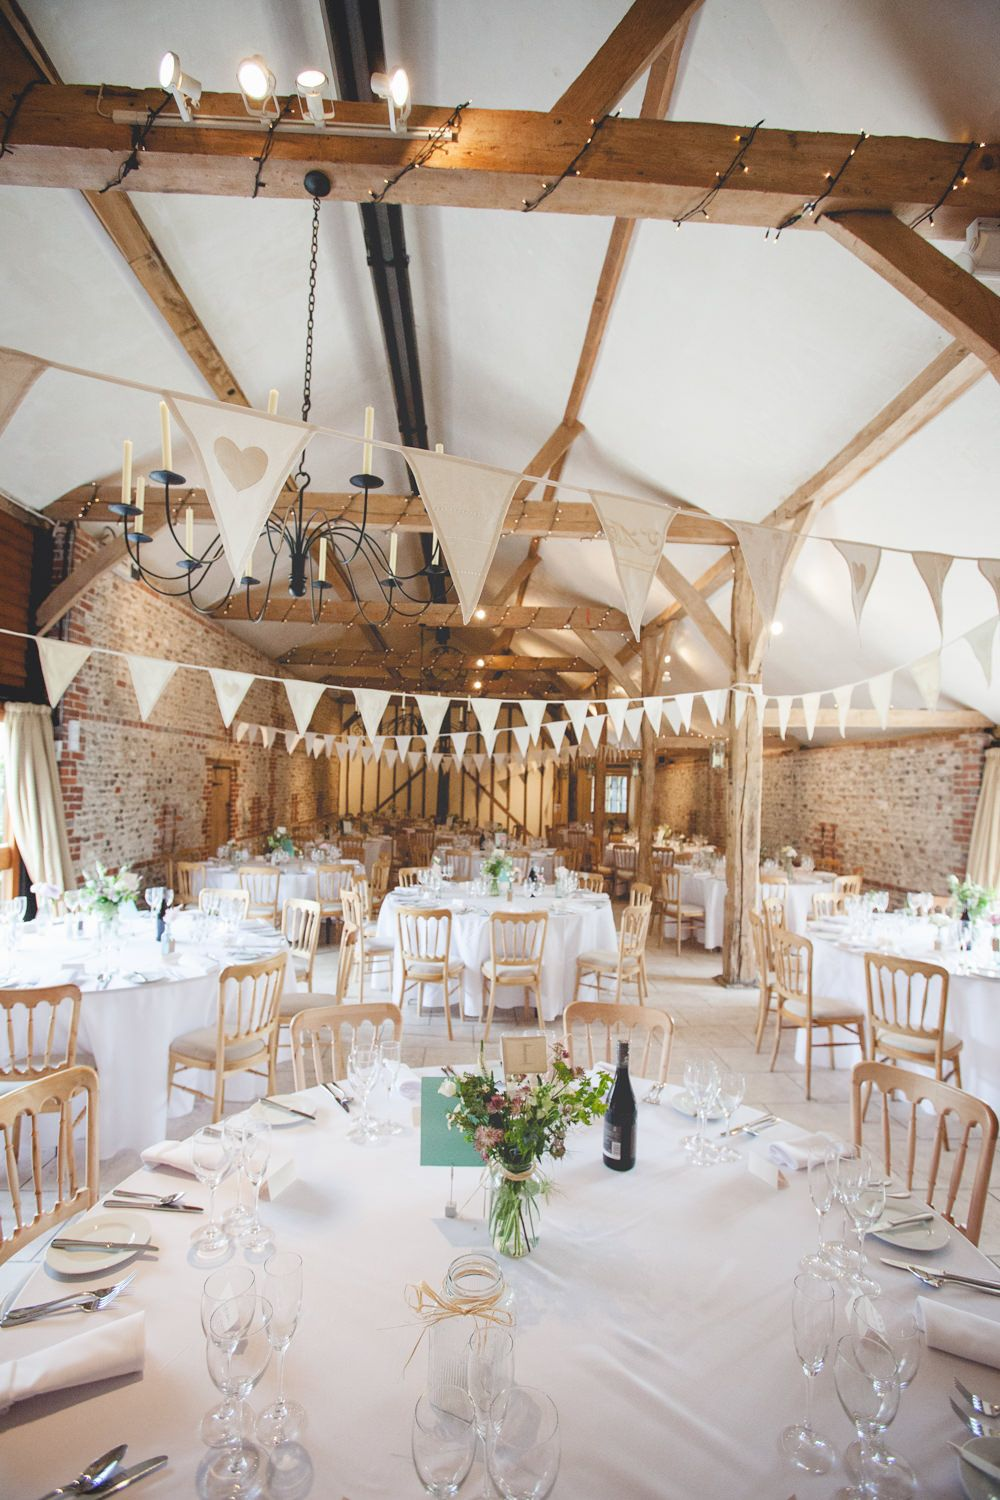 Rustic Pastel Wedding At Upwaltham Barns With Bride In Lace Claire